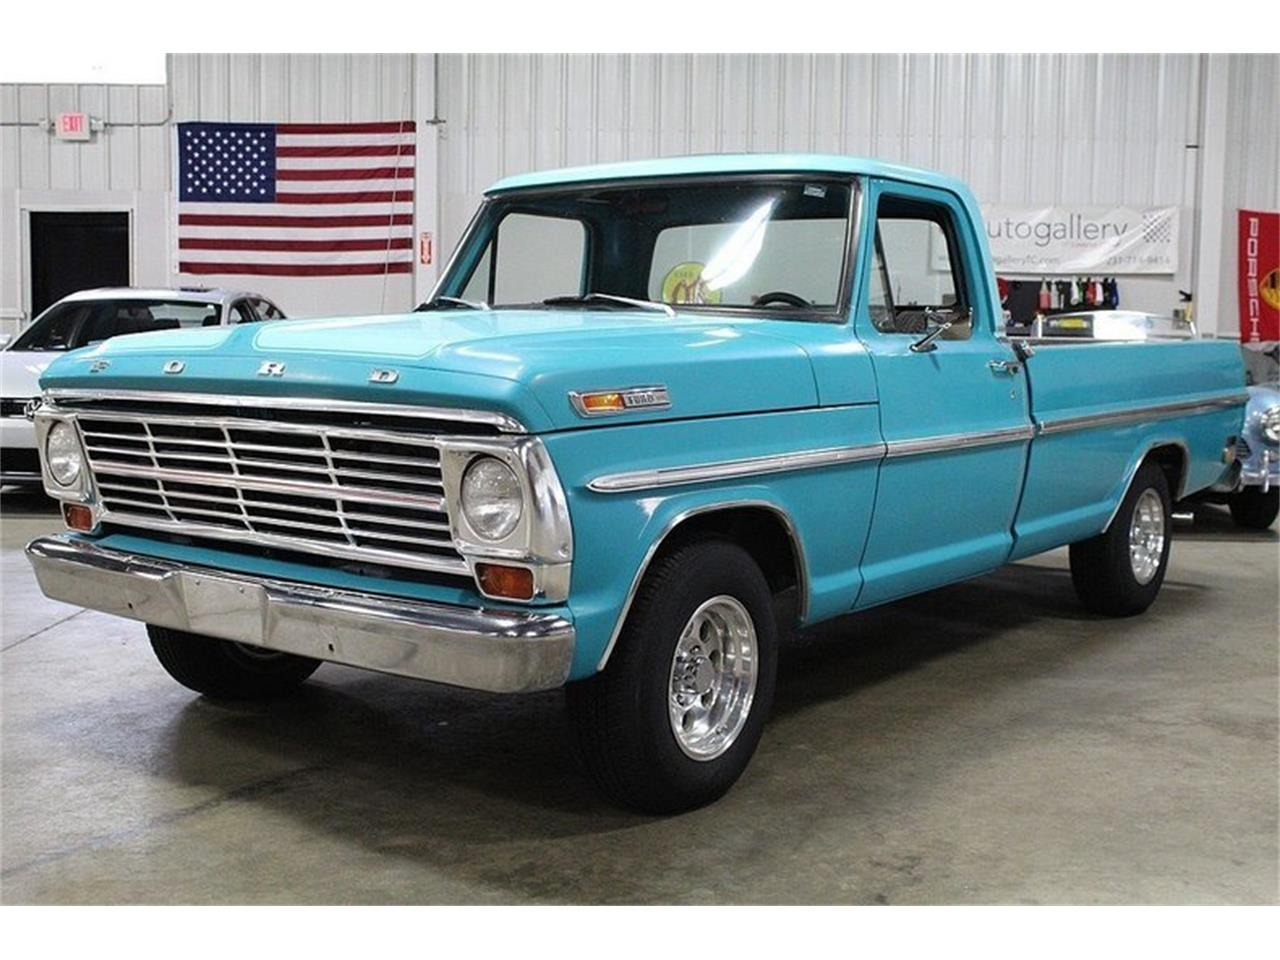 Large picture of 68 f100 nnzk